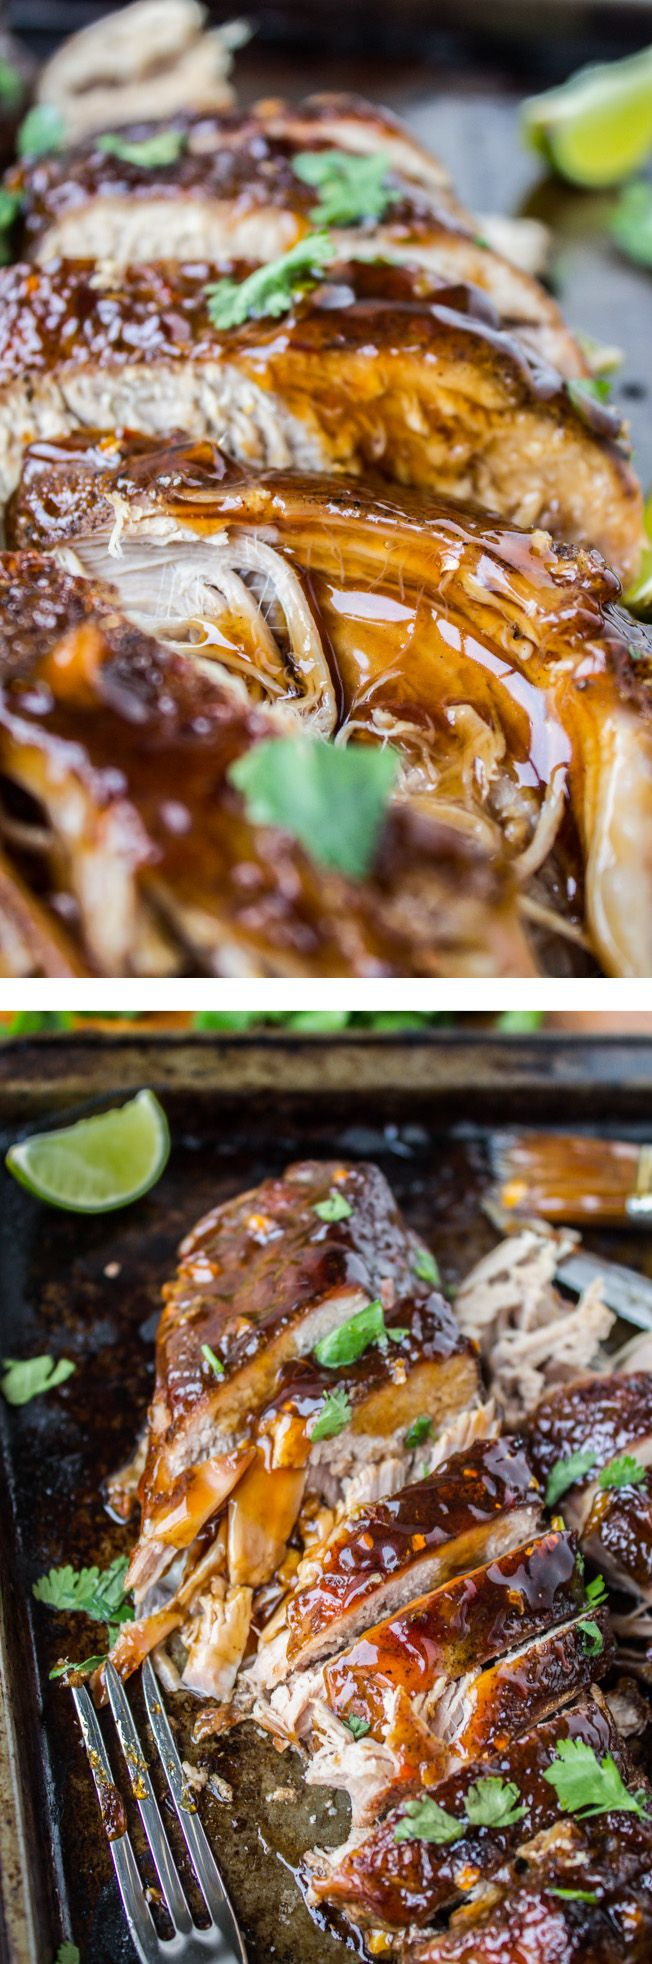 Asian Pork Tenderloin with Ginger Glaze (Slow Cooker) - The Food Charlatan